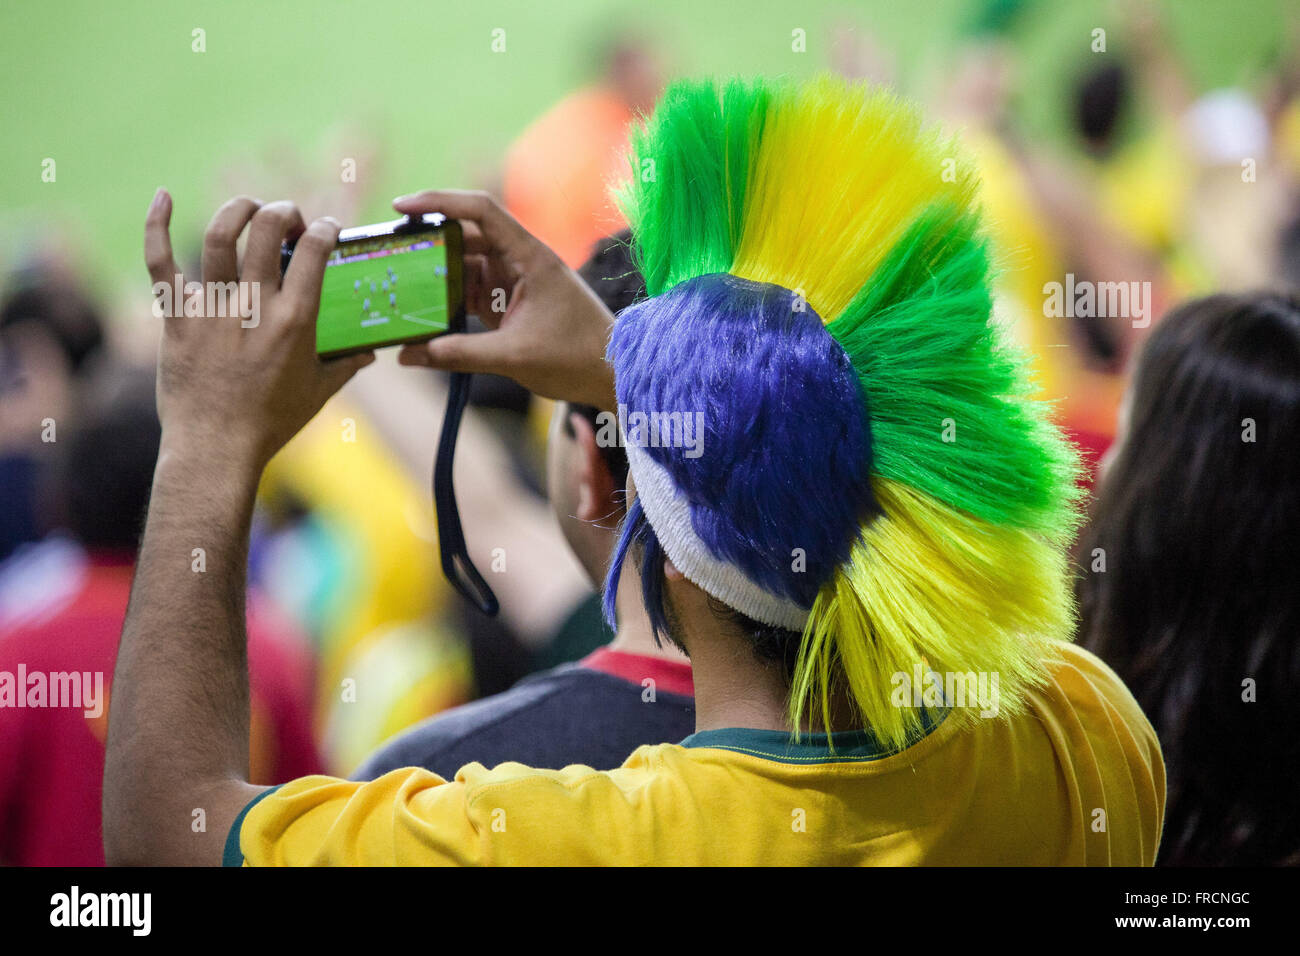 Supporter photographing the match between Brazil and Spain for the final of the Confederations Cup - Stock Image